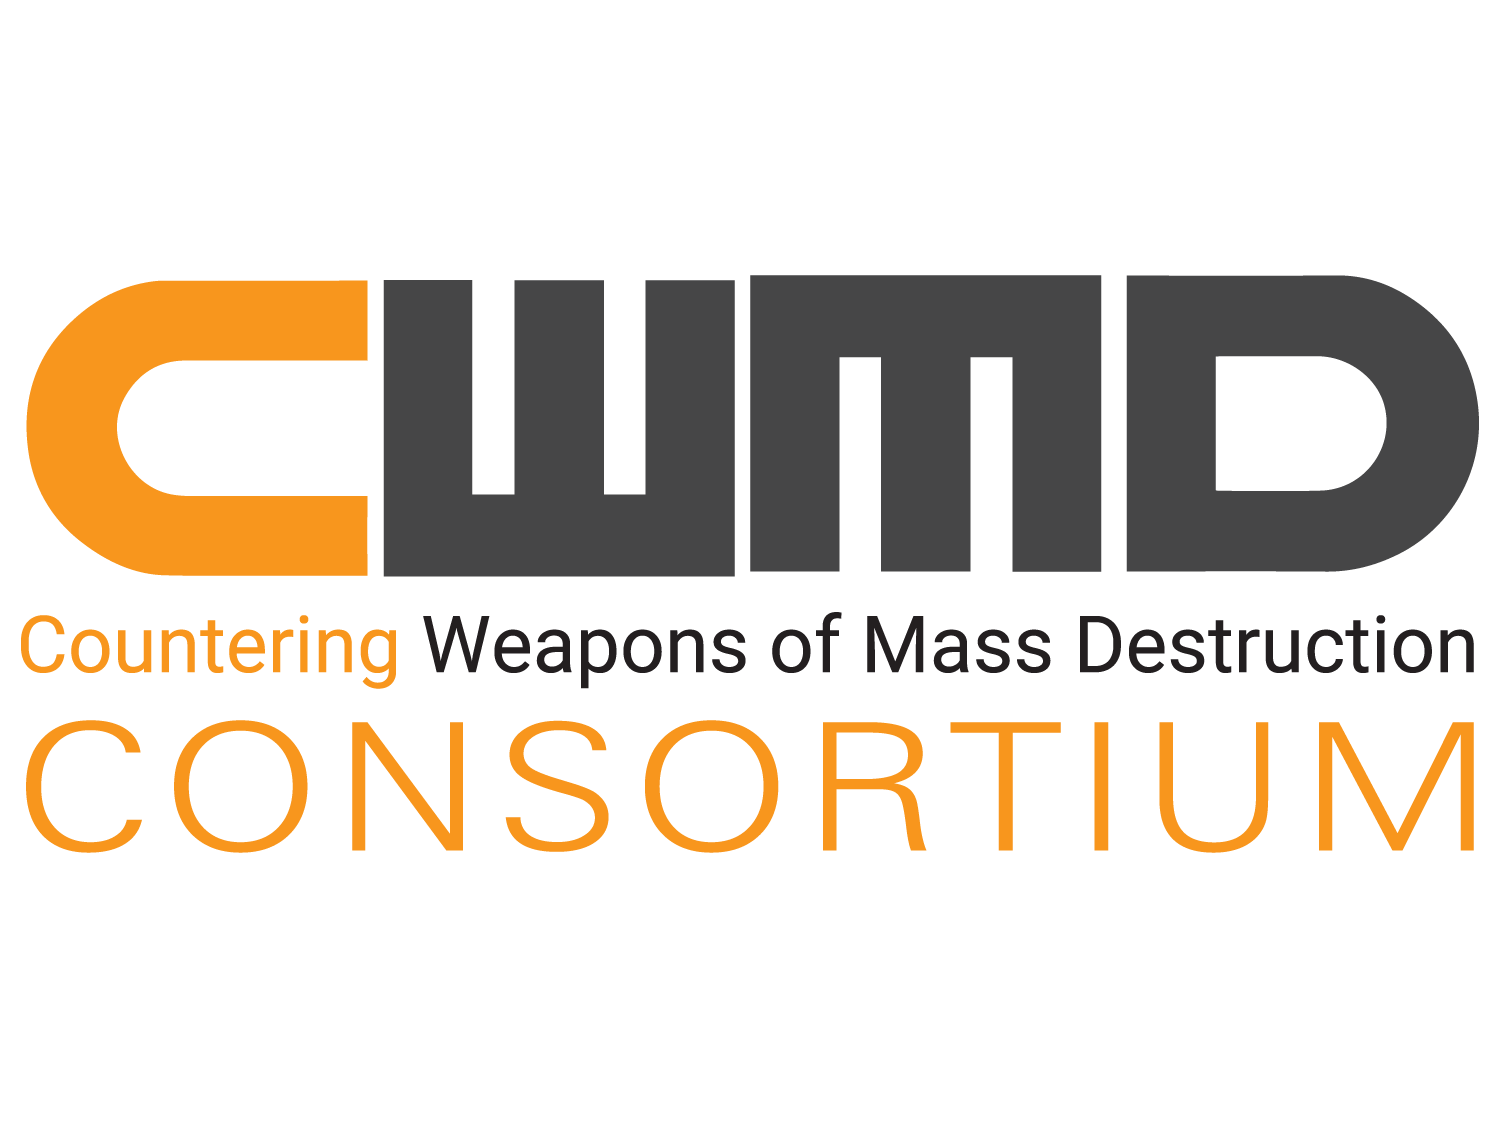 Countering Weapons Of Mass Destruction (CWMD)